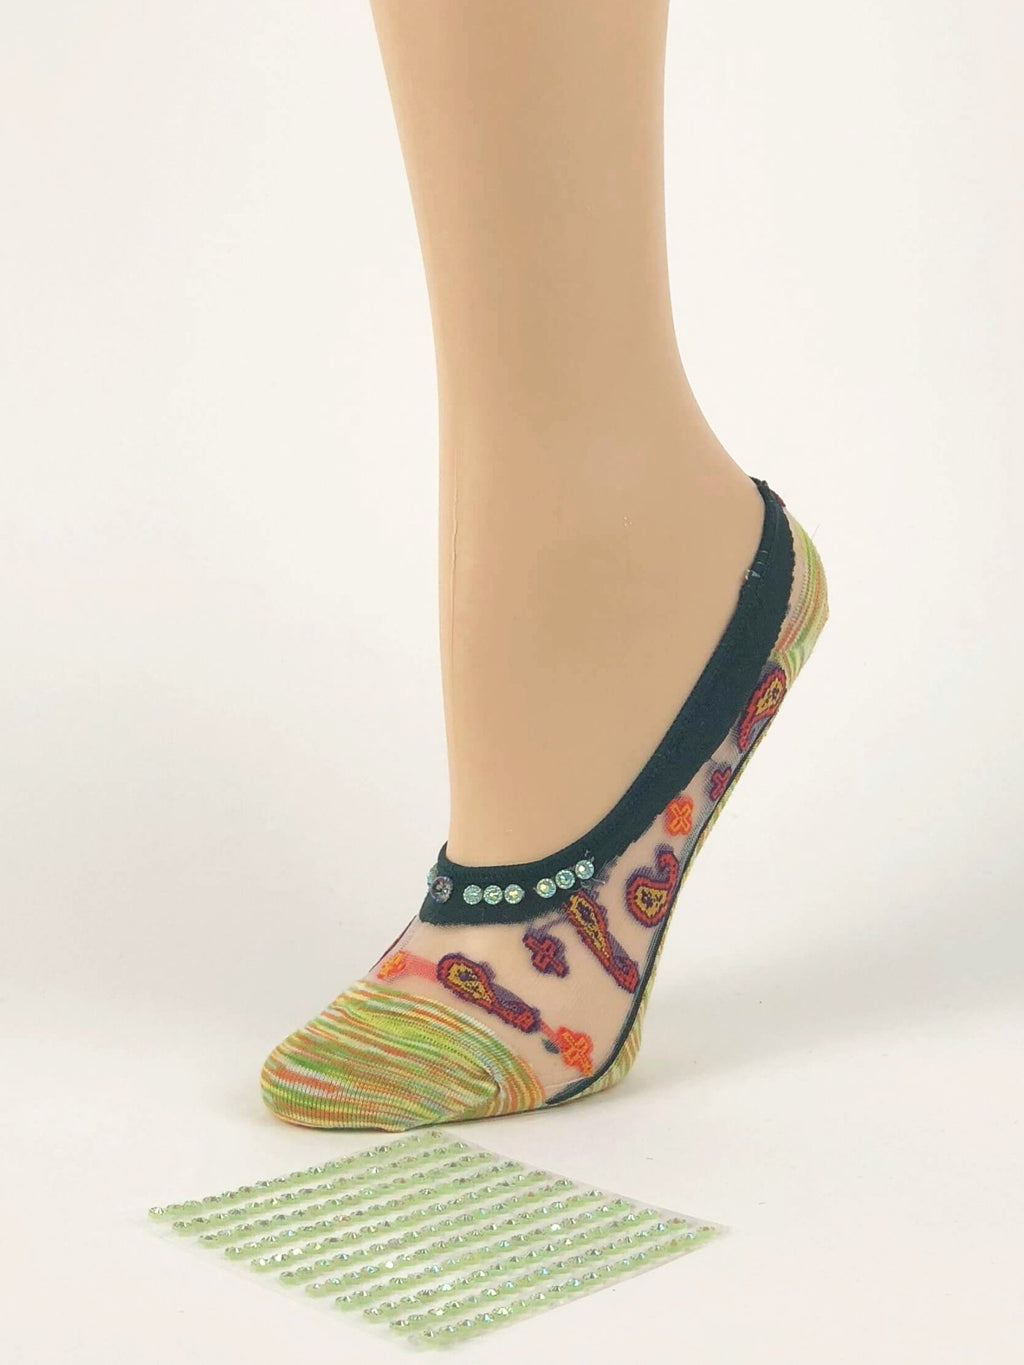 Green/Yellow Patterned Ankle Sheer Socks - Global Trendz Fashion®